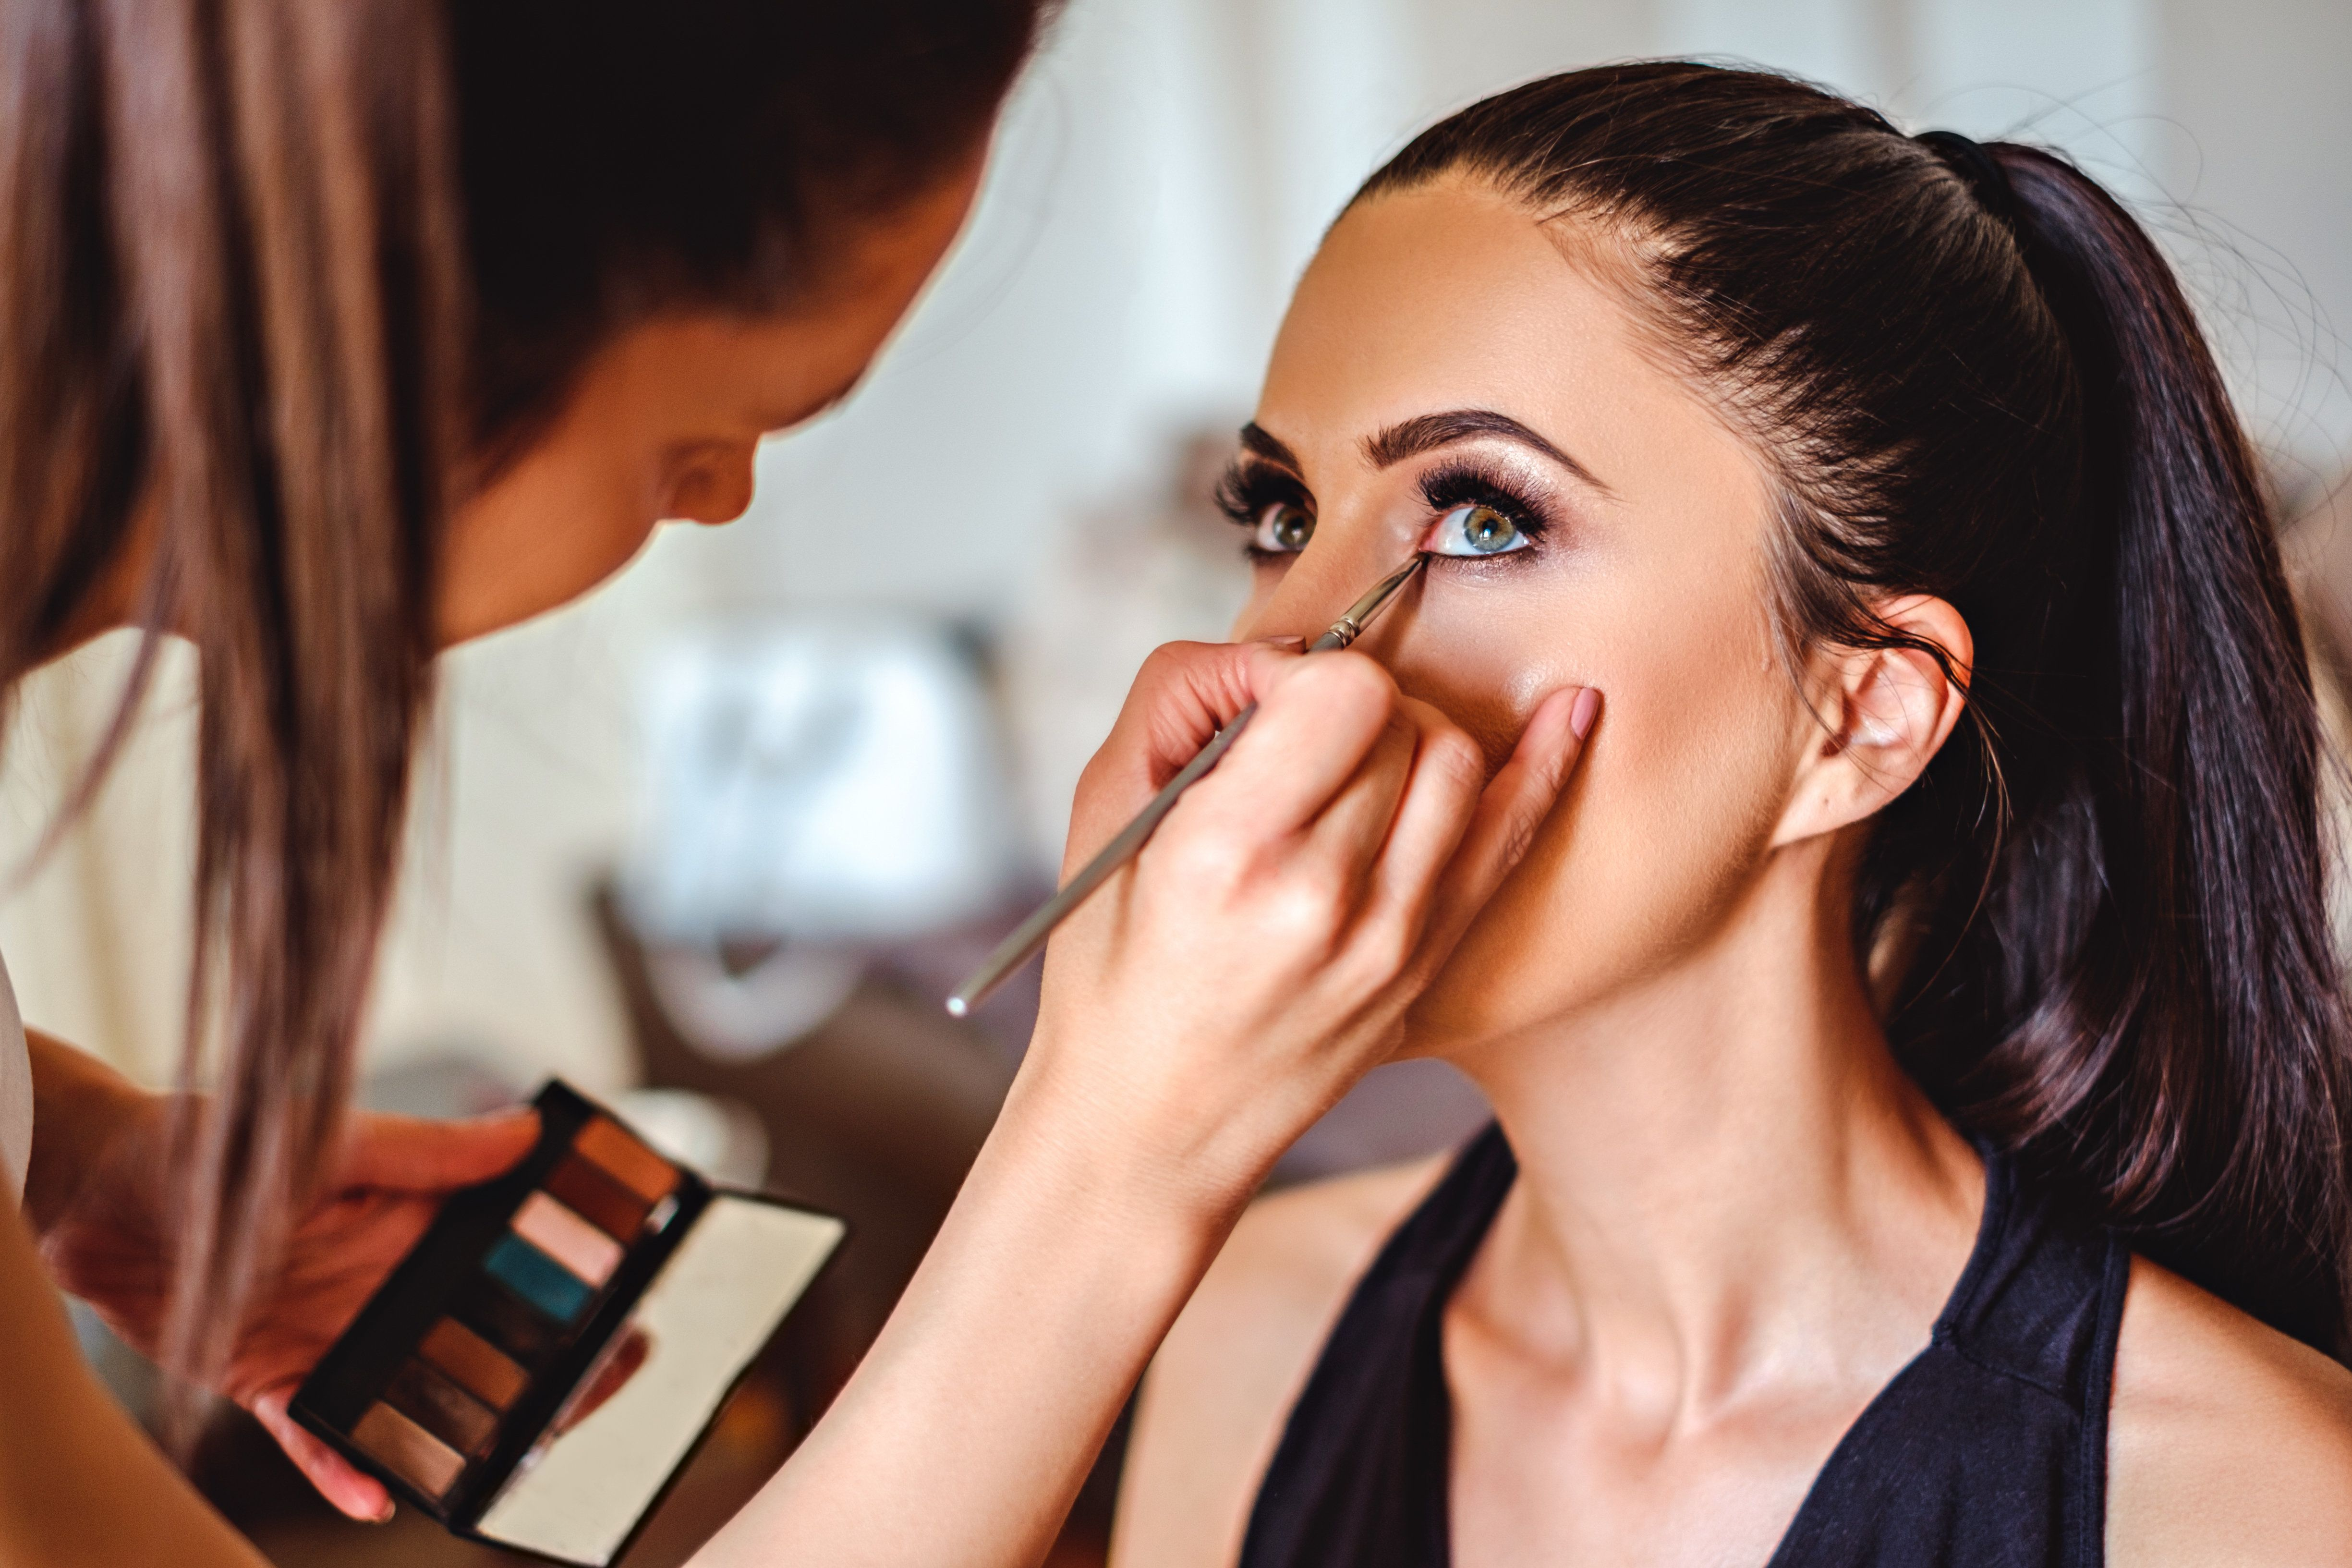 Even professional makeup artists love drugstore beauty